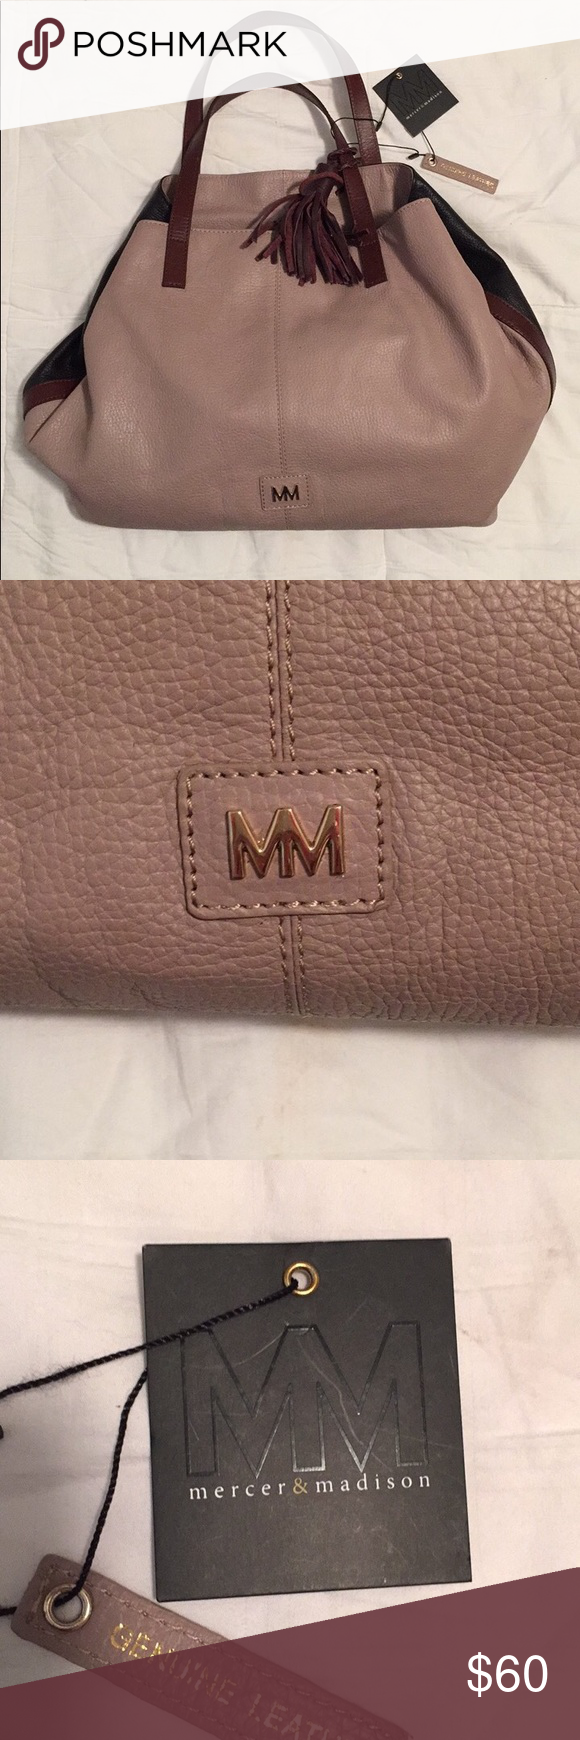 Nwt Mercer Madison Leather Handbag Purse